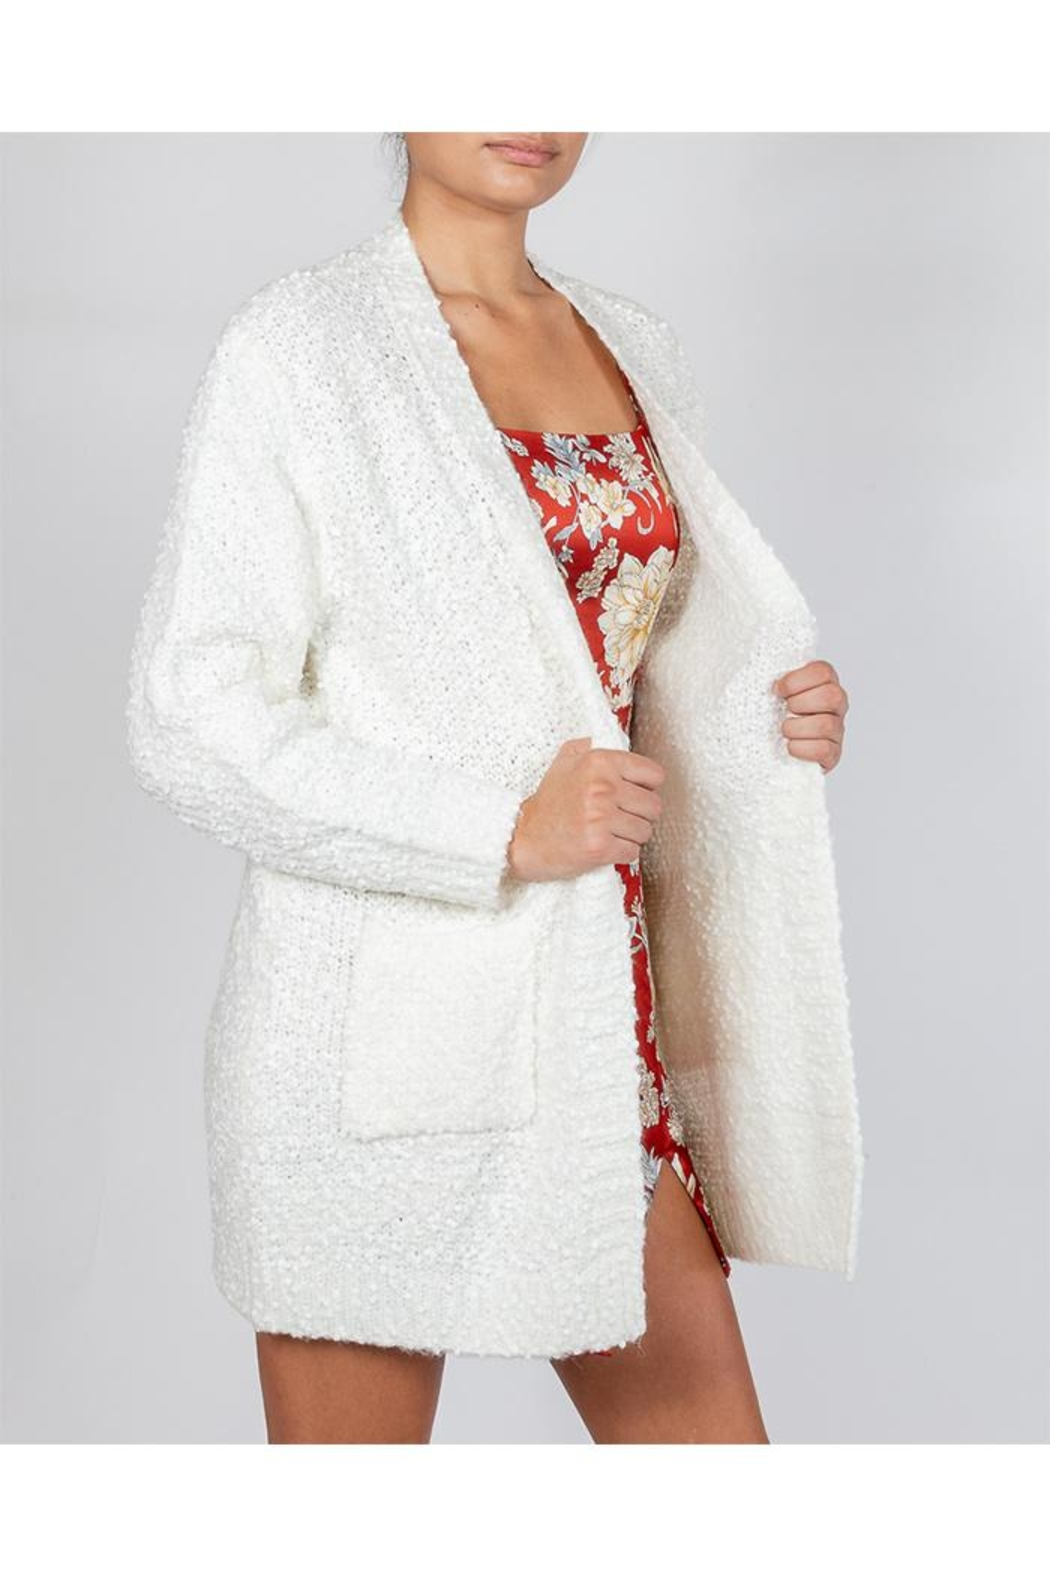 Cotton Candy Snowball White Cardigan - Front Full Image